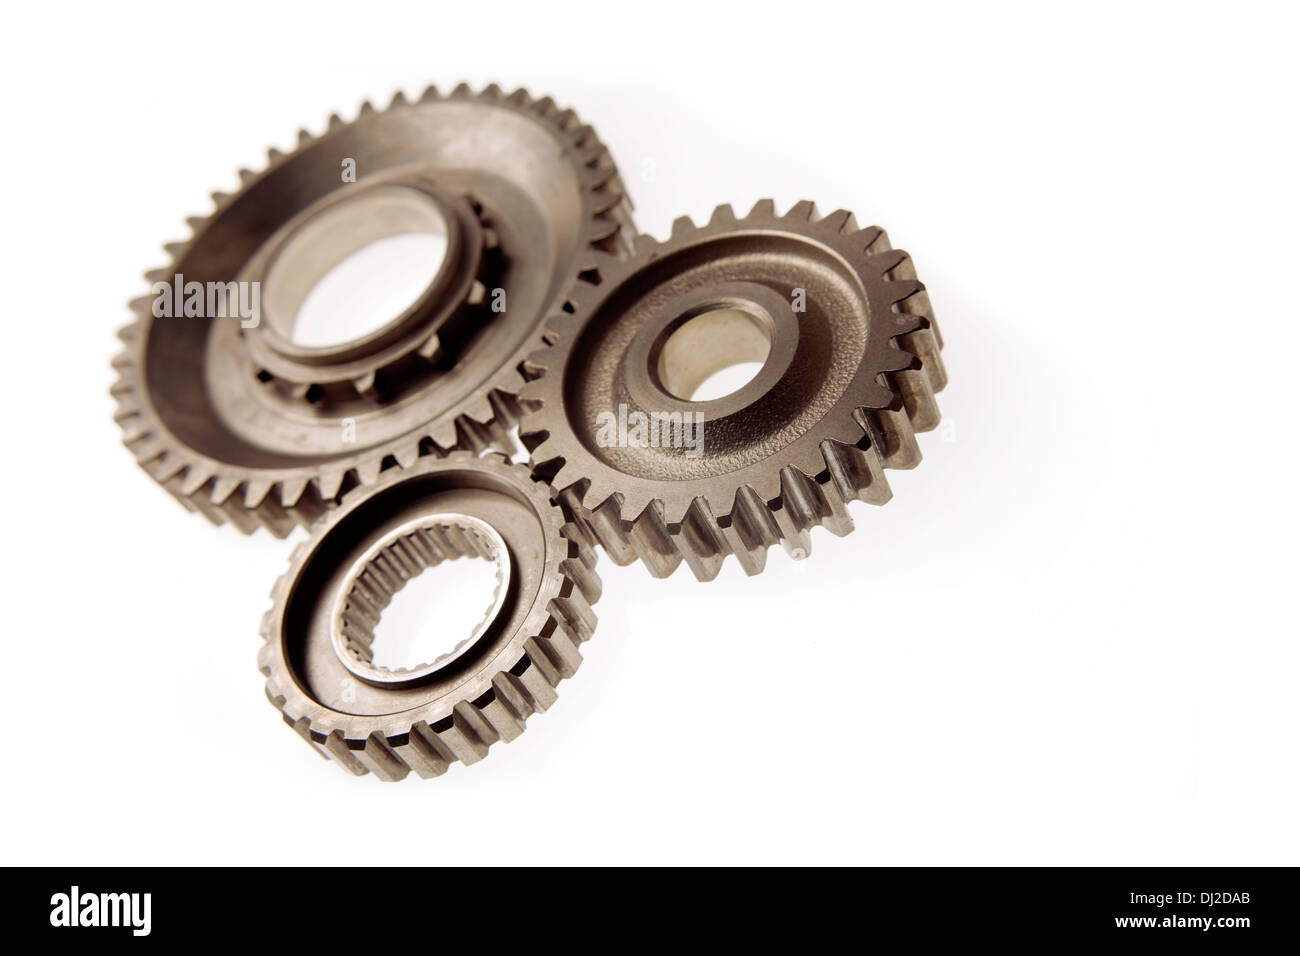 Metal cog gears joining together - Stock Image